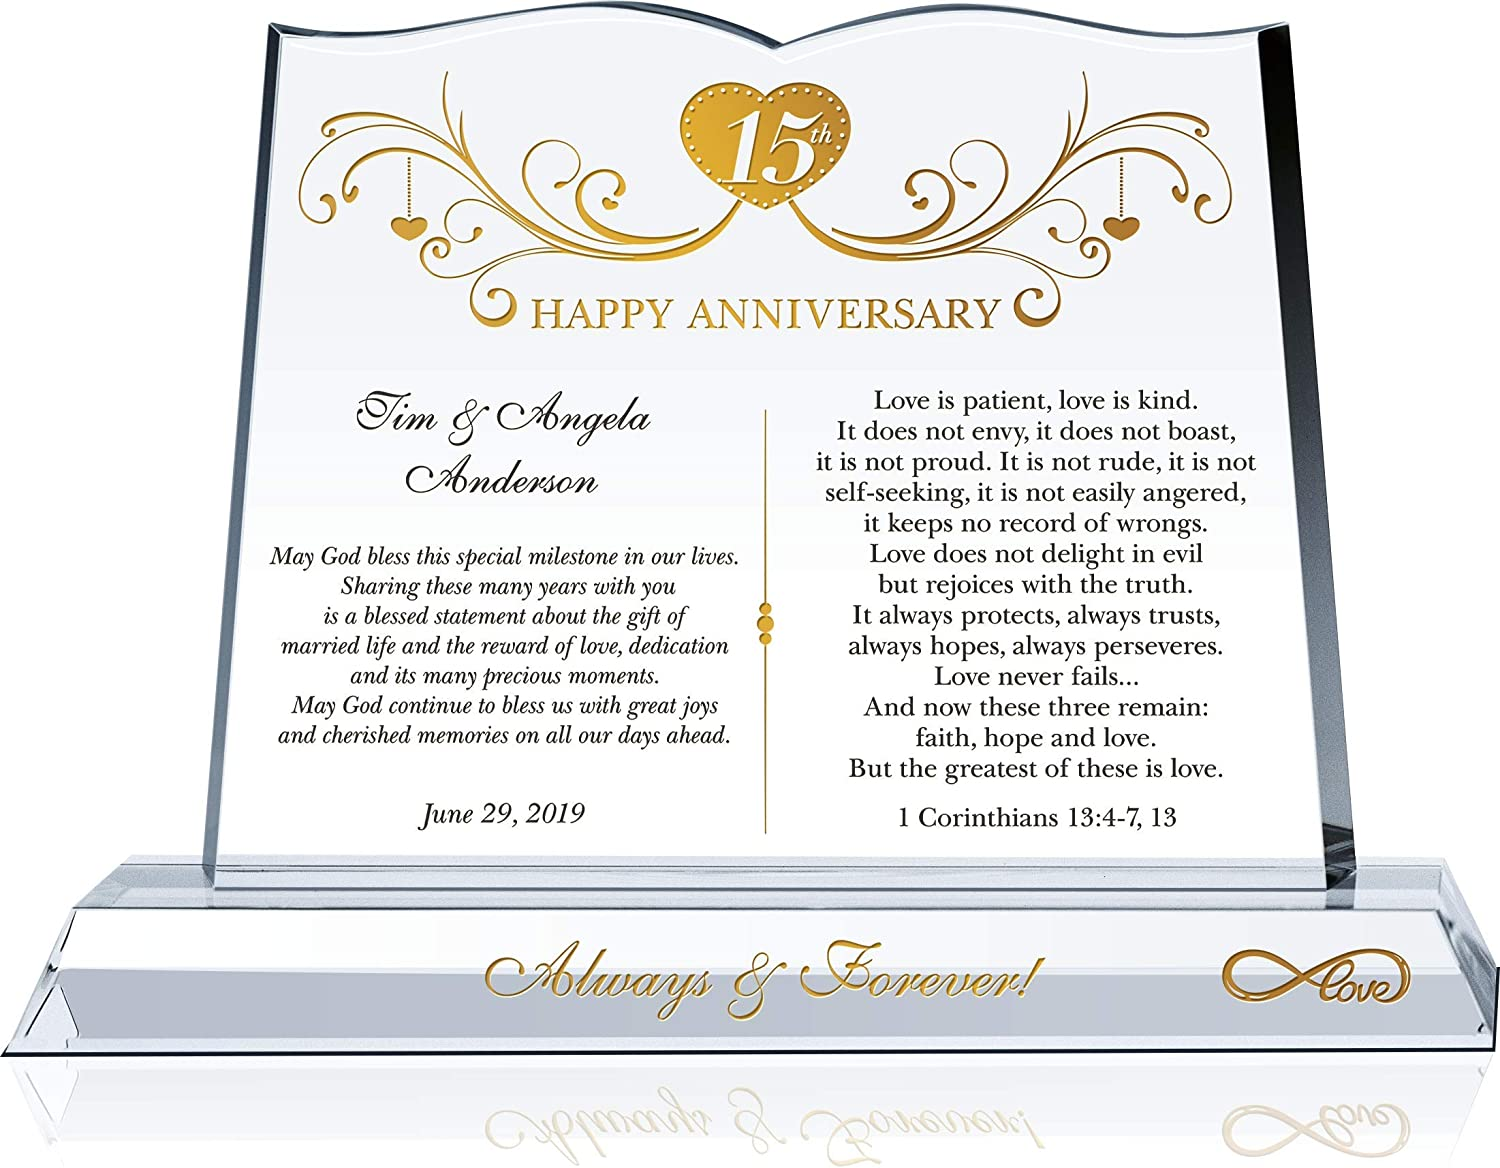 Amazon Com Personalized Infinity Love Crystal 15th Wedding Anniversary Gift Plaque For Wife For Husband Customized With Couple S Name Unique 15th Anniversary Gift For Him For Her For Spouse M 10 Home